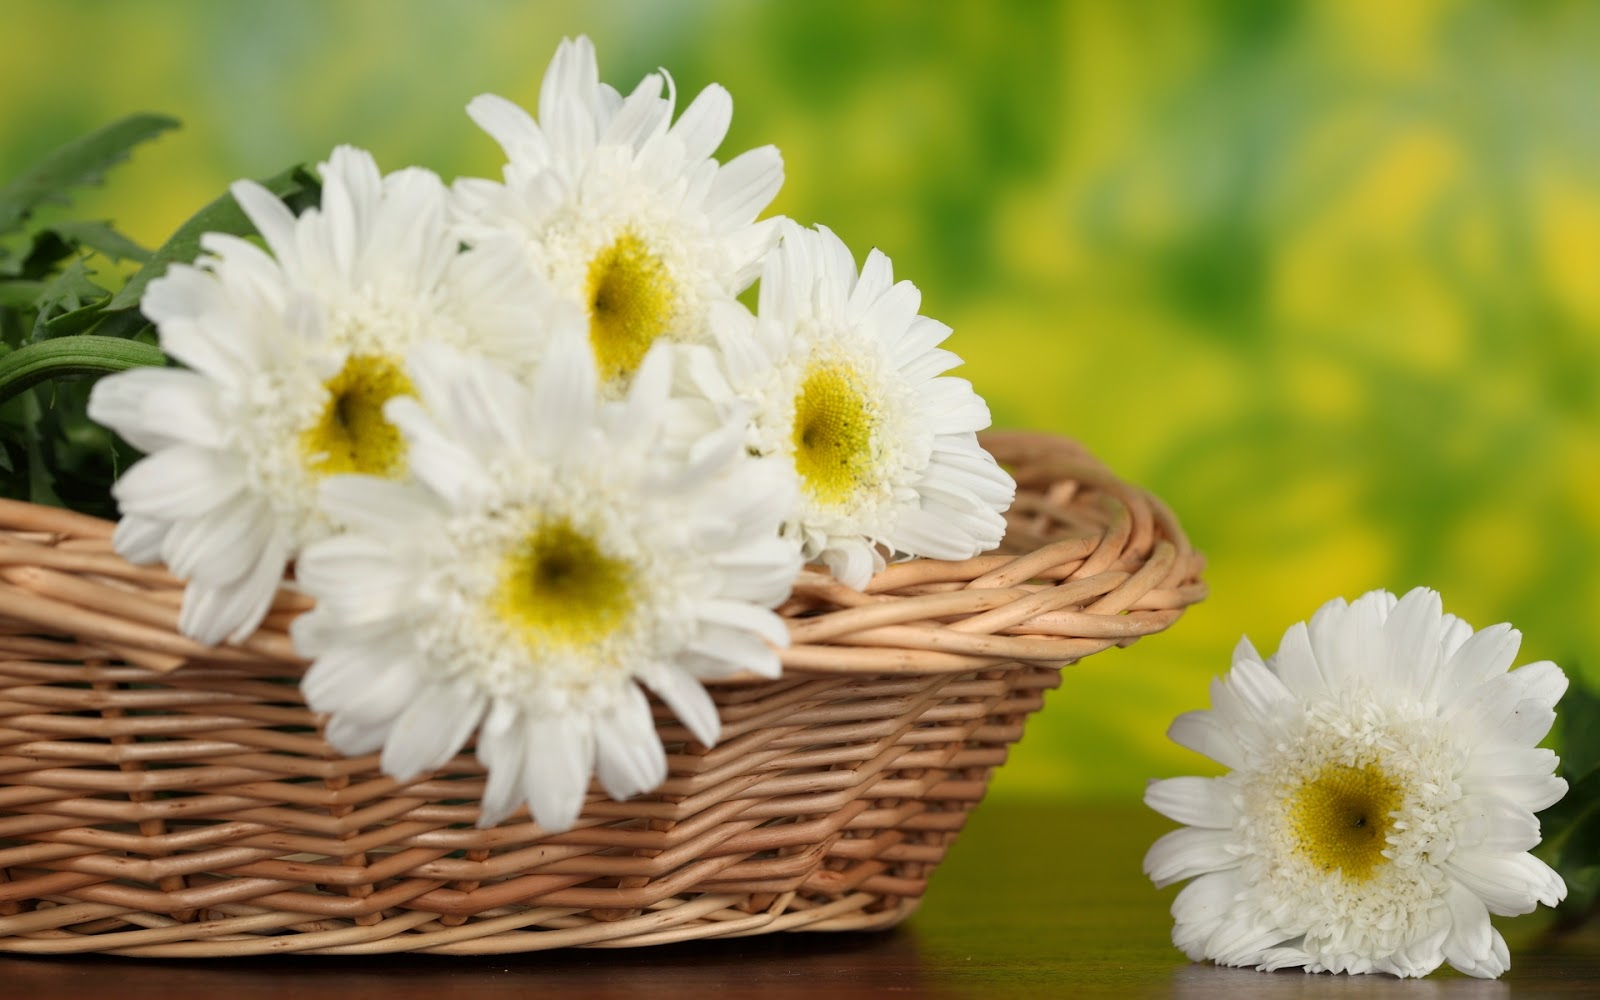 White-Daisy-flower-flowe- bouquet-basket-picture.jpg